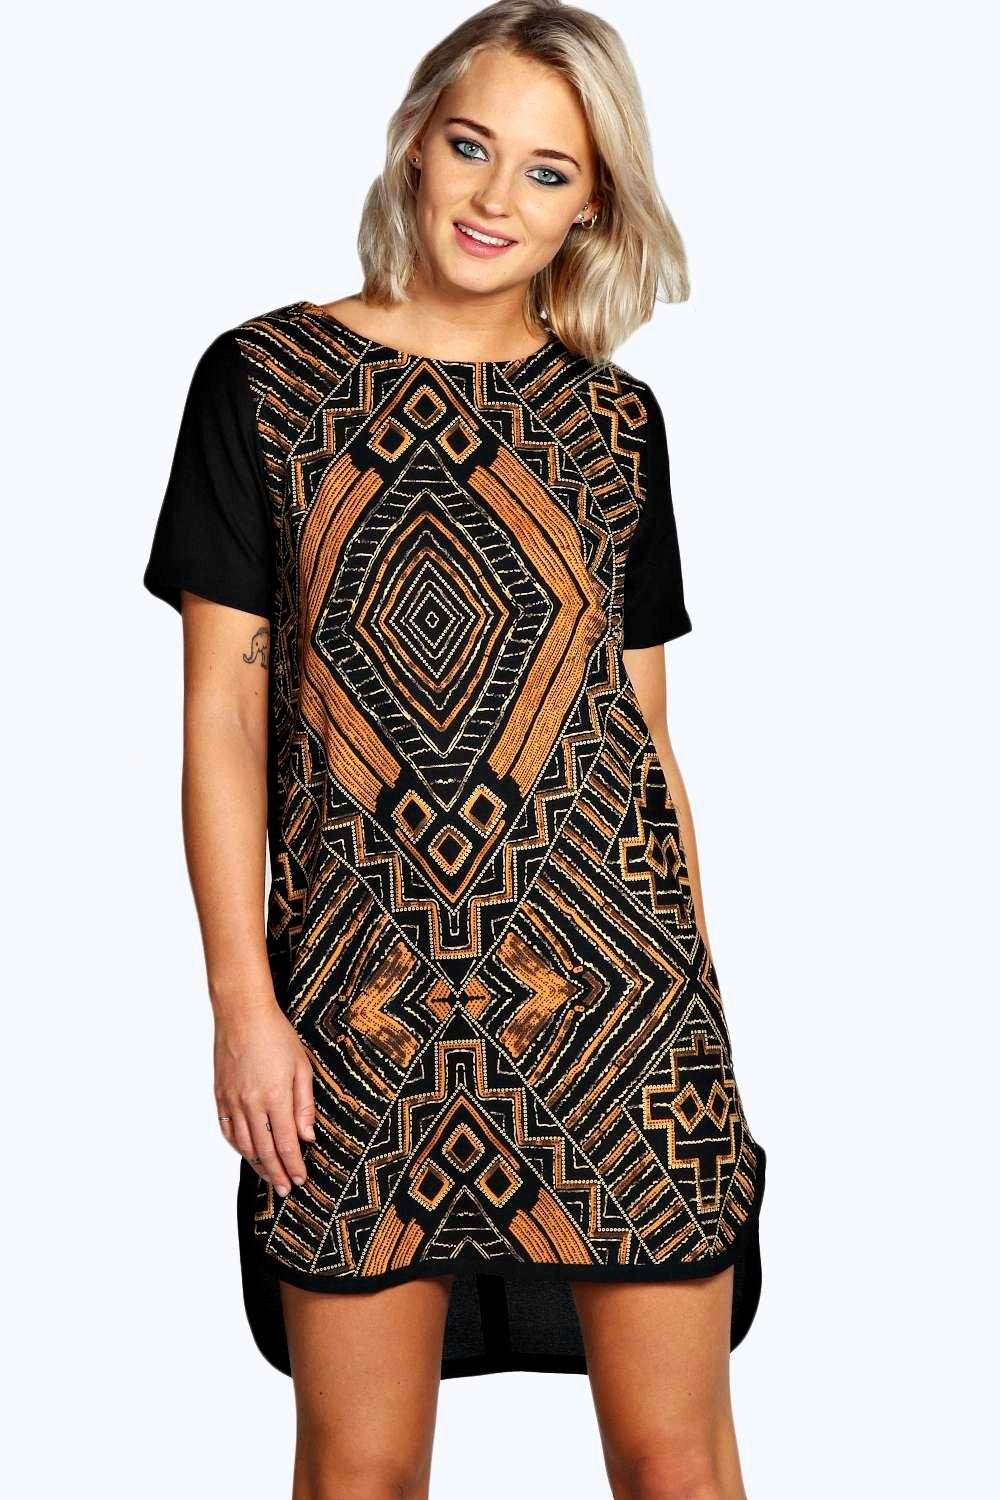 Caprice printed woven shift dress at for Boohoo dresses for weddings